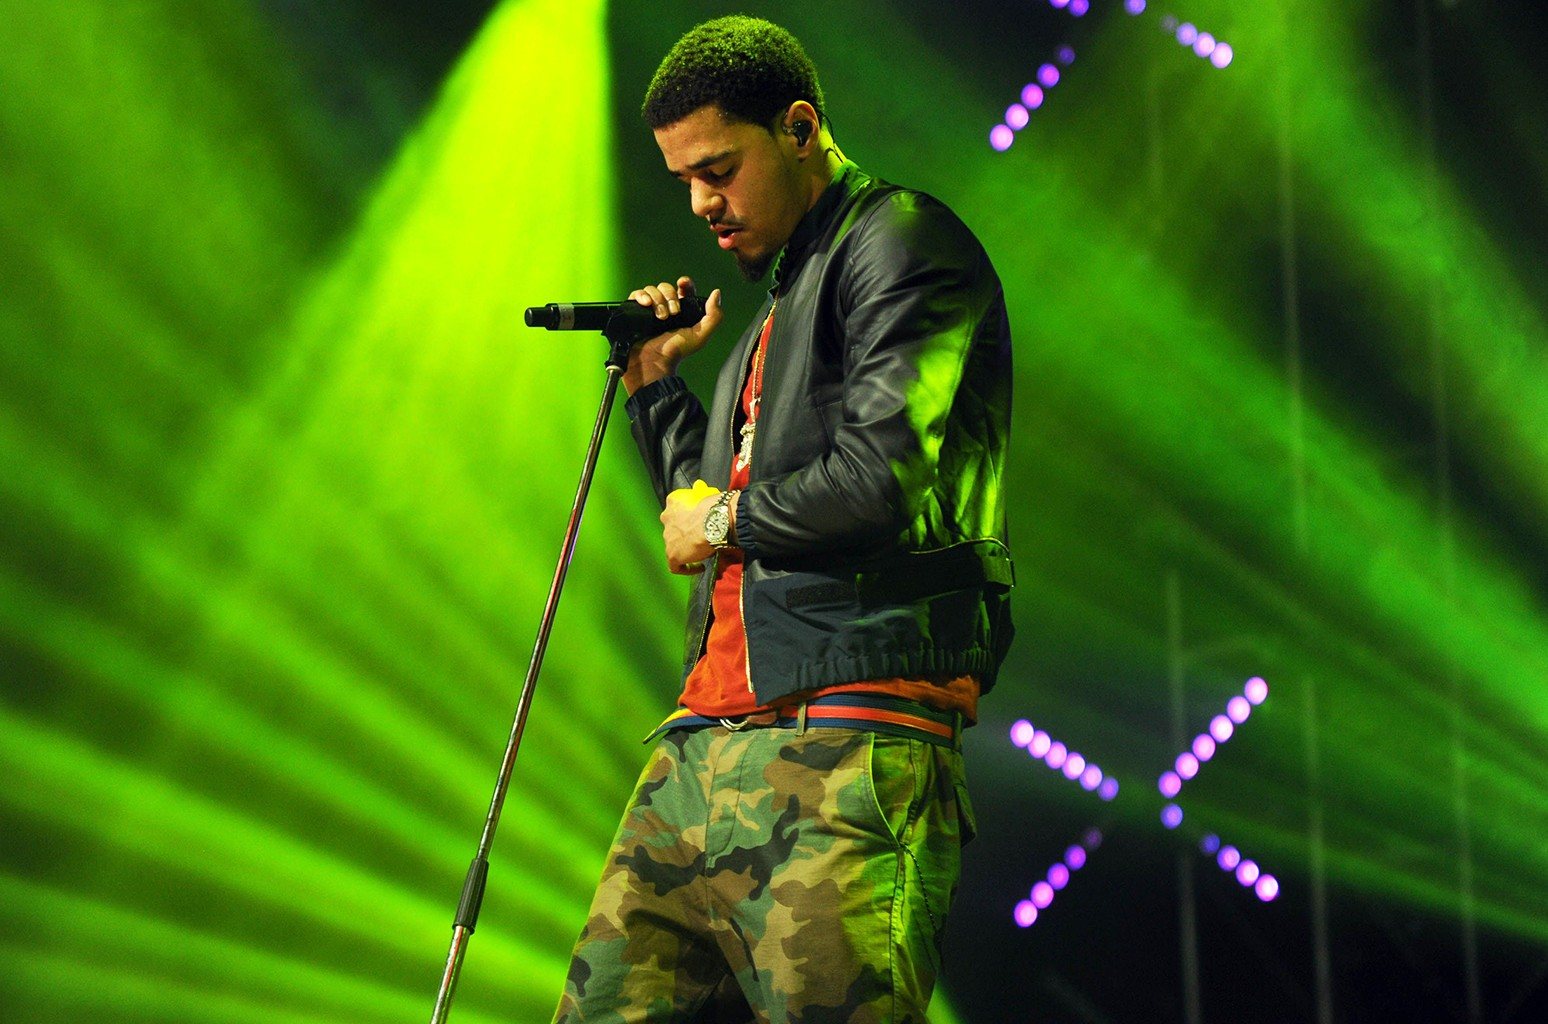 J. Cole performs in Ebrington Square